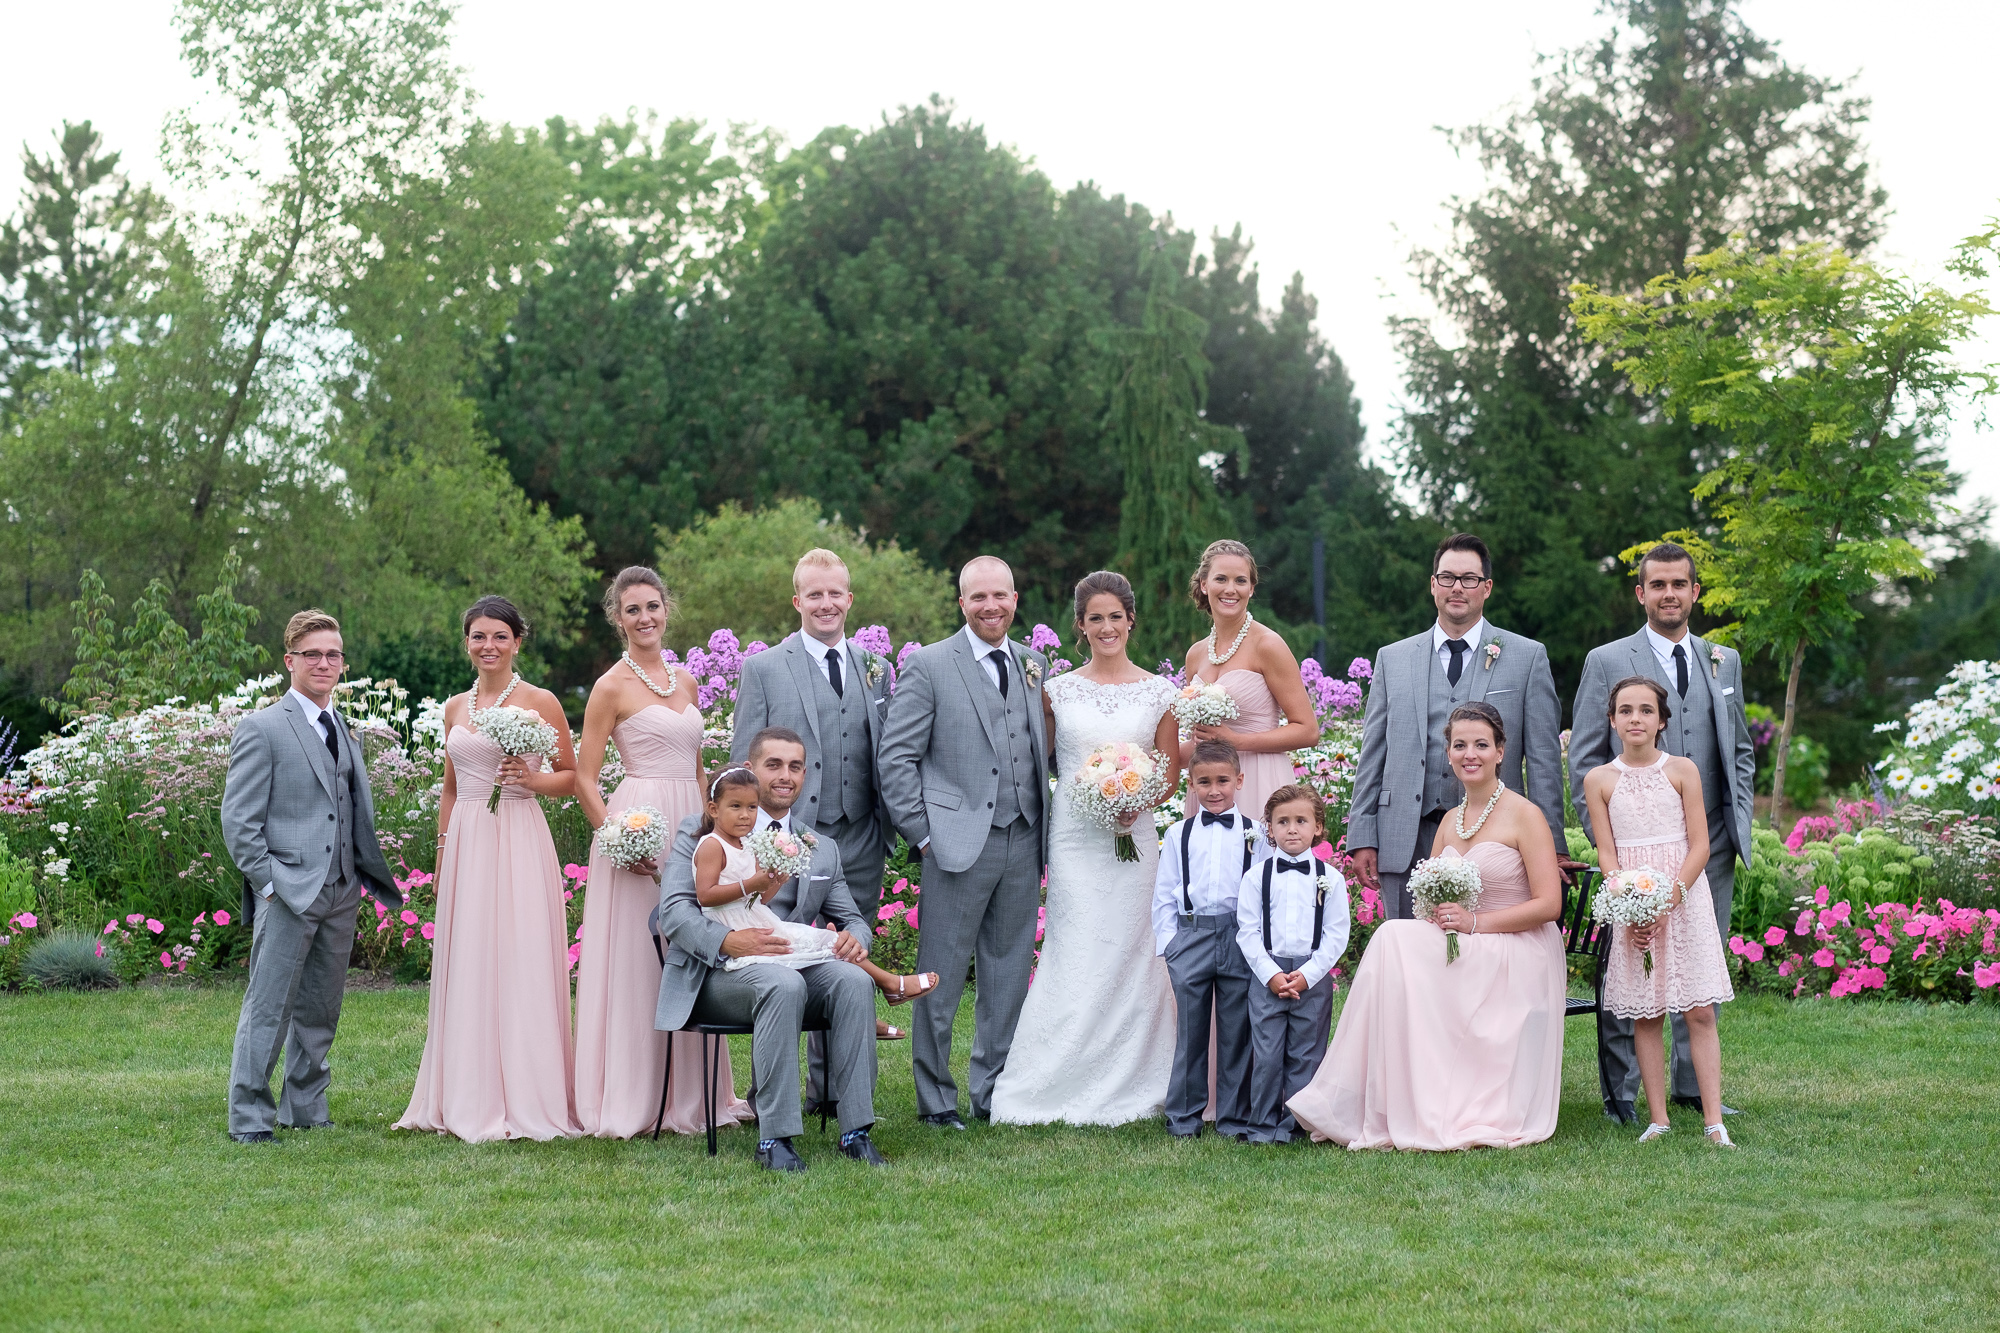 A portrait of the wedding party from Rebecca and Jeff's wedding.